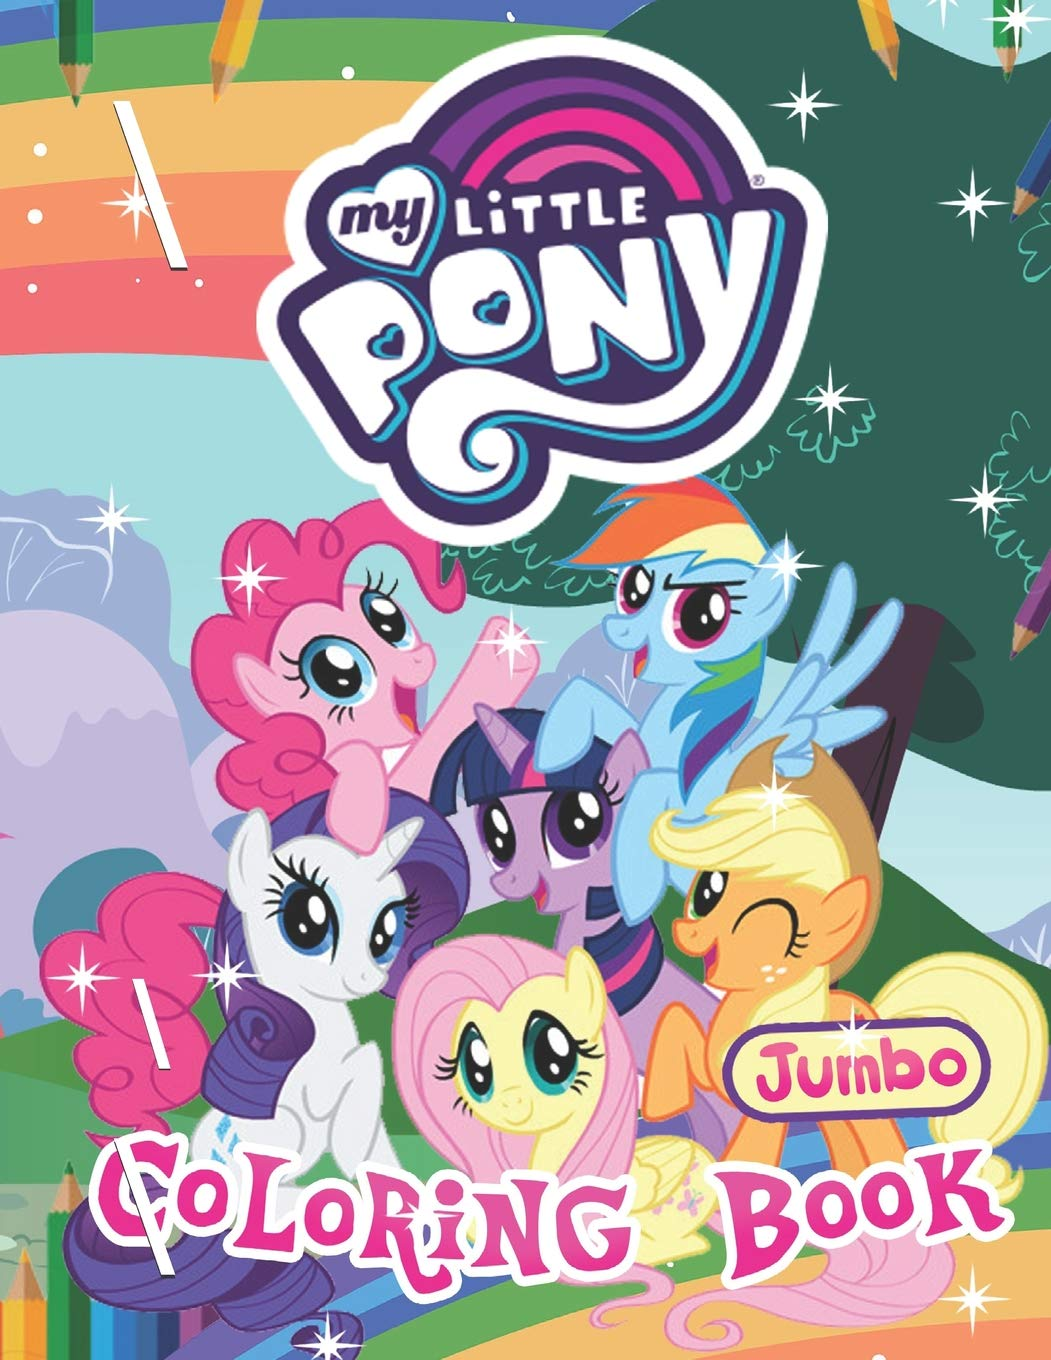 - My Little Pony Coloring Book: My Little Pony Jumbo Coloring Book